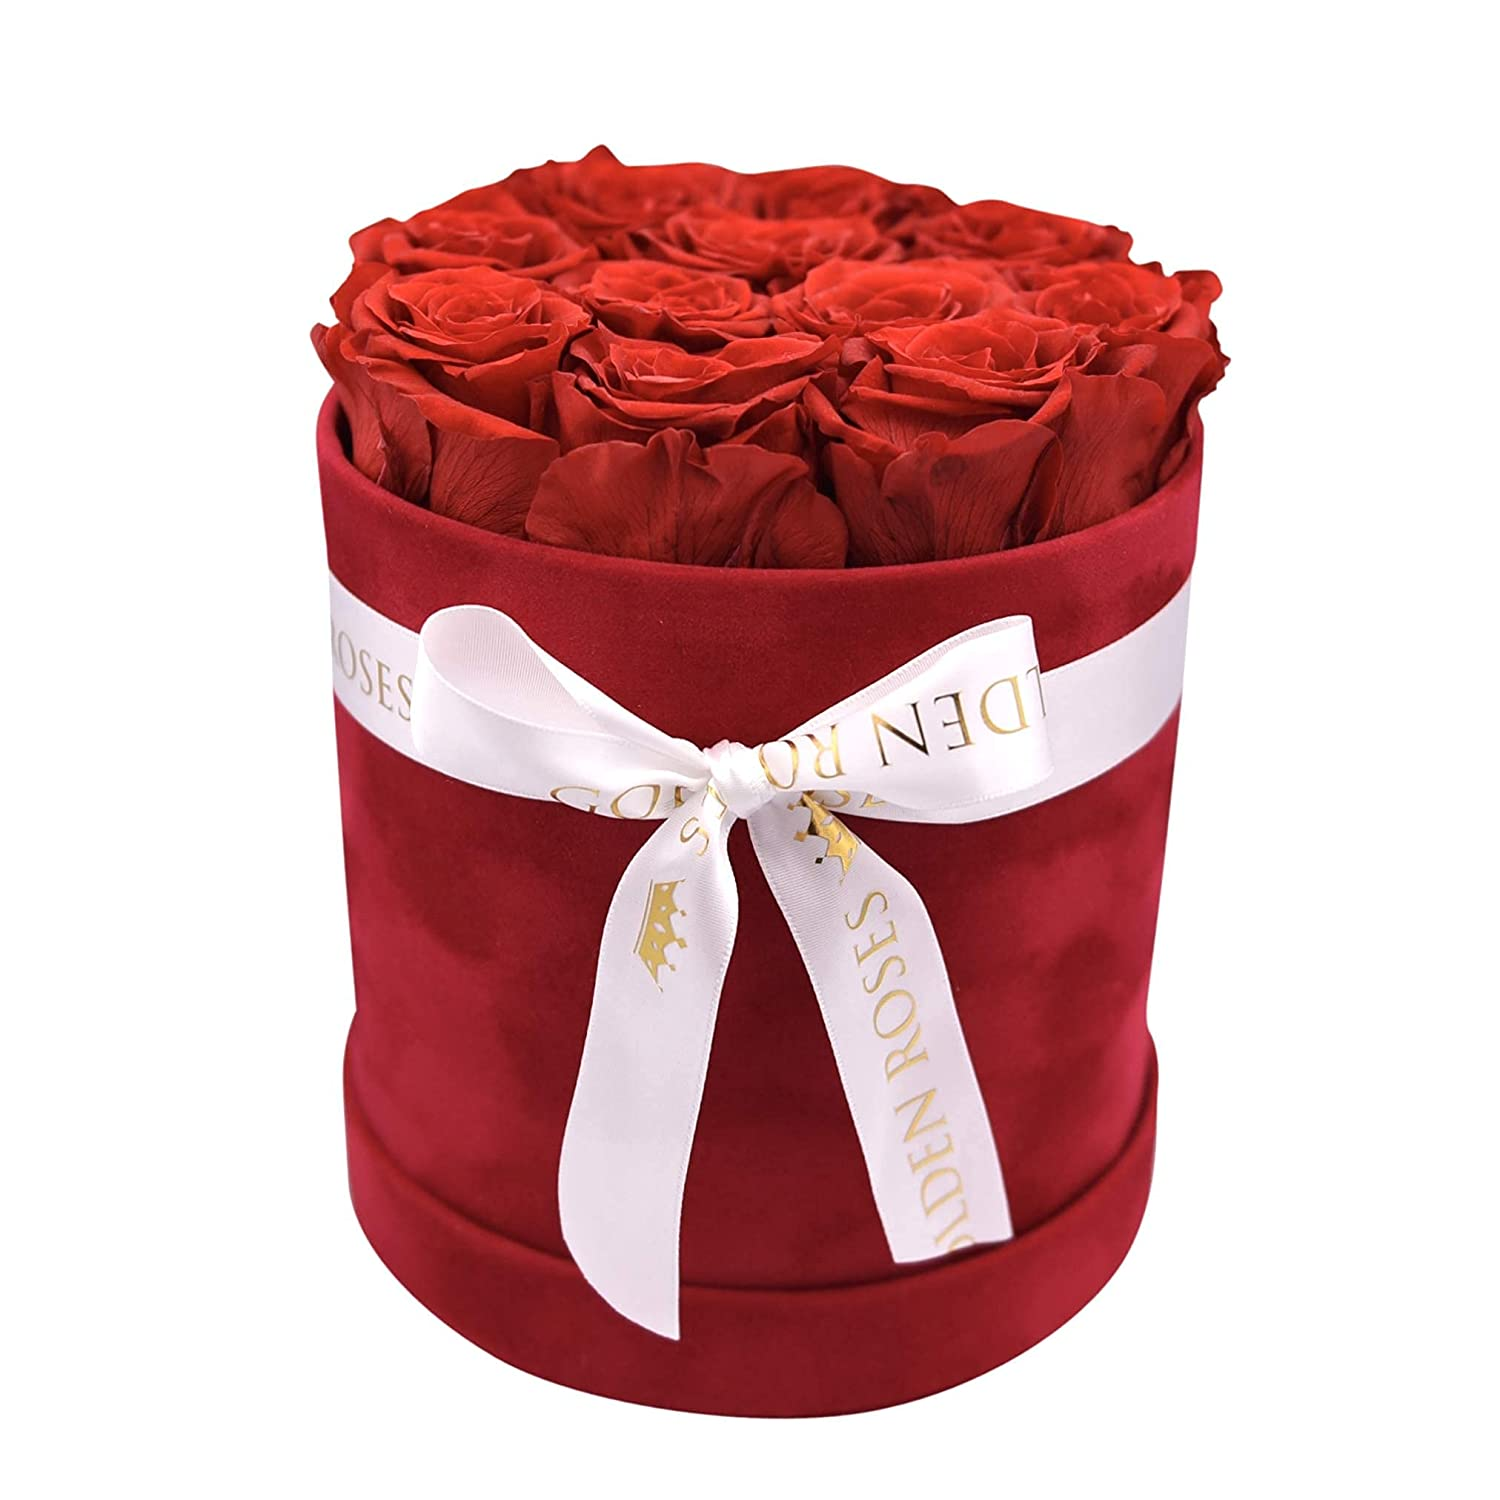 Preserved Real Roses in a Velvet Flower box Fresh Flowers Roses Gift for Valentine's Day, Mother's Day, Birthday, Christmas, Anniversary Luxury Flowers Round Box (Red Roses)